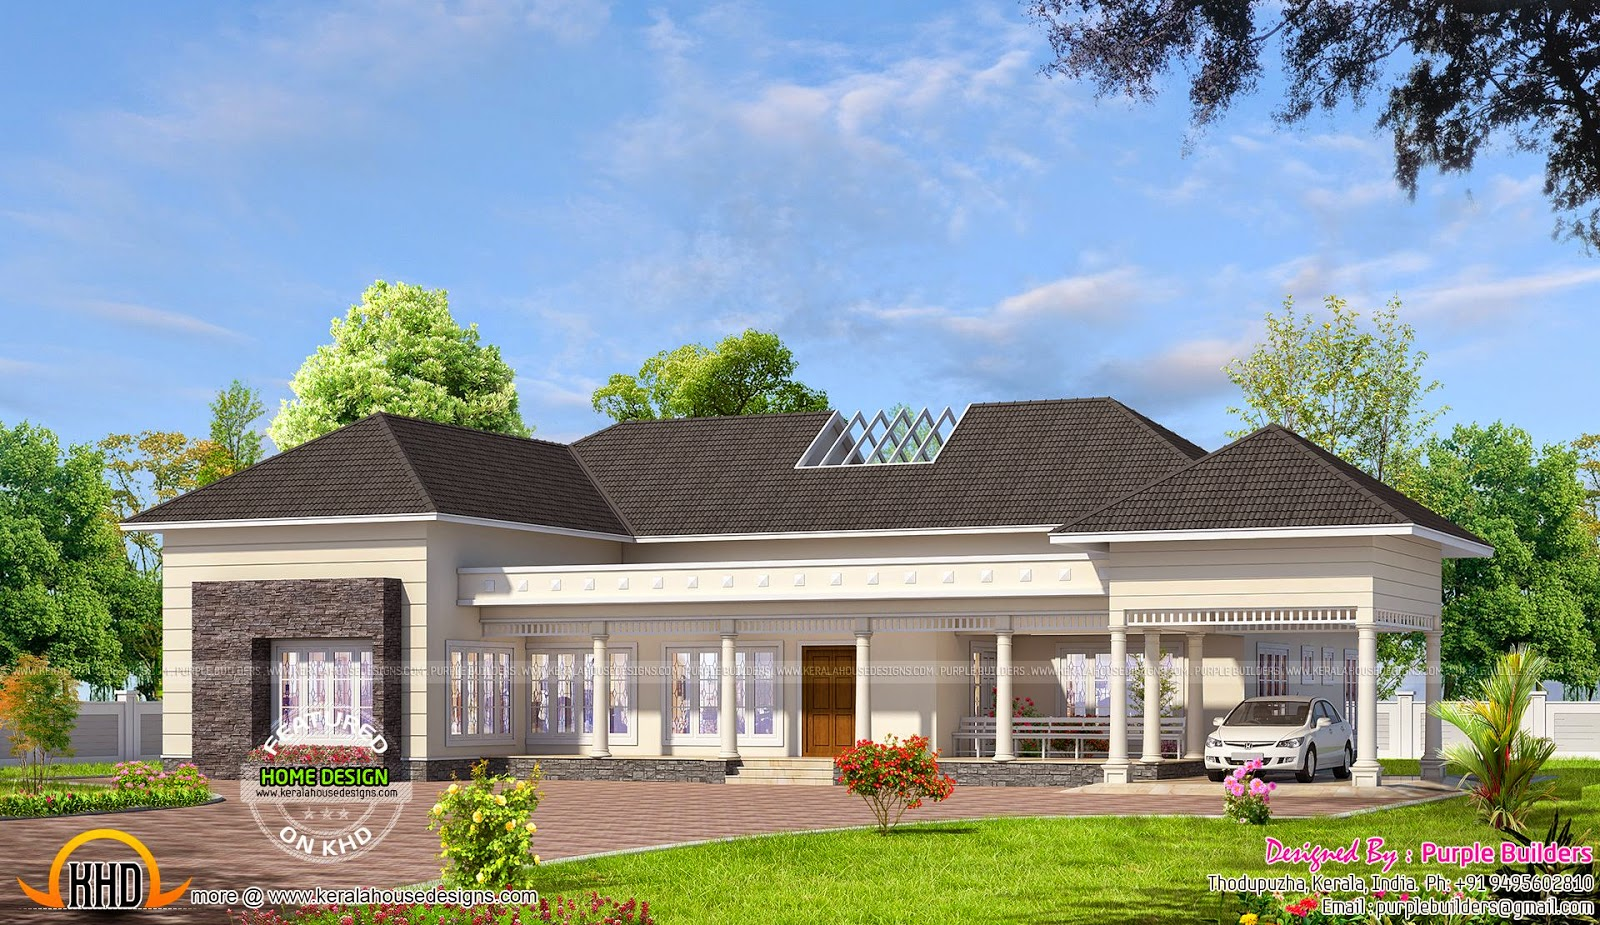 India bungalow exterior kerala home design and floor plans for Indian bungalow designs and floor plans